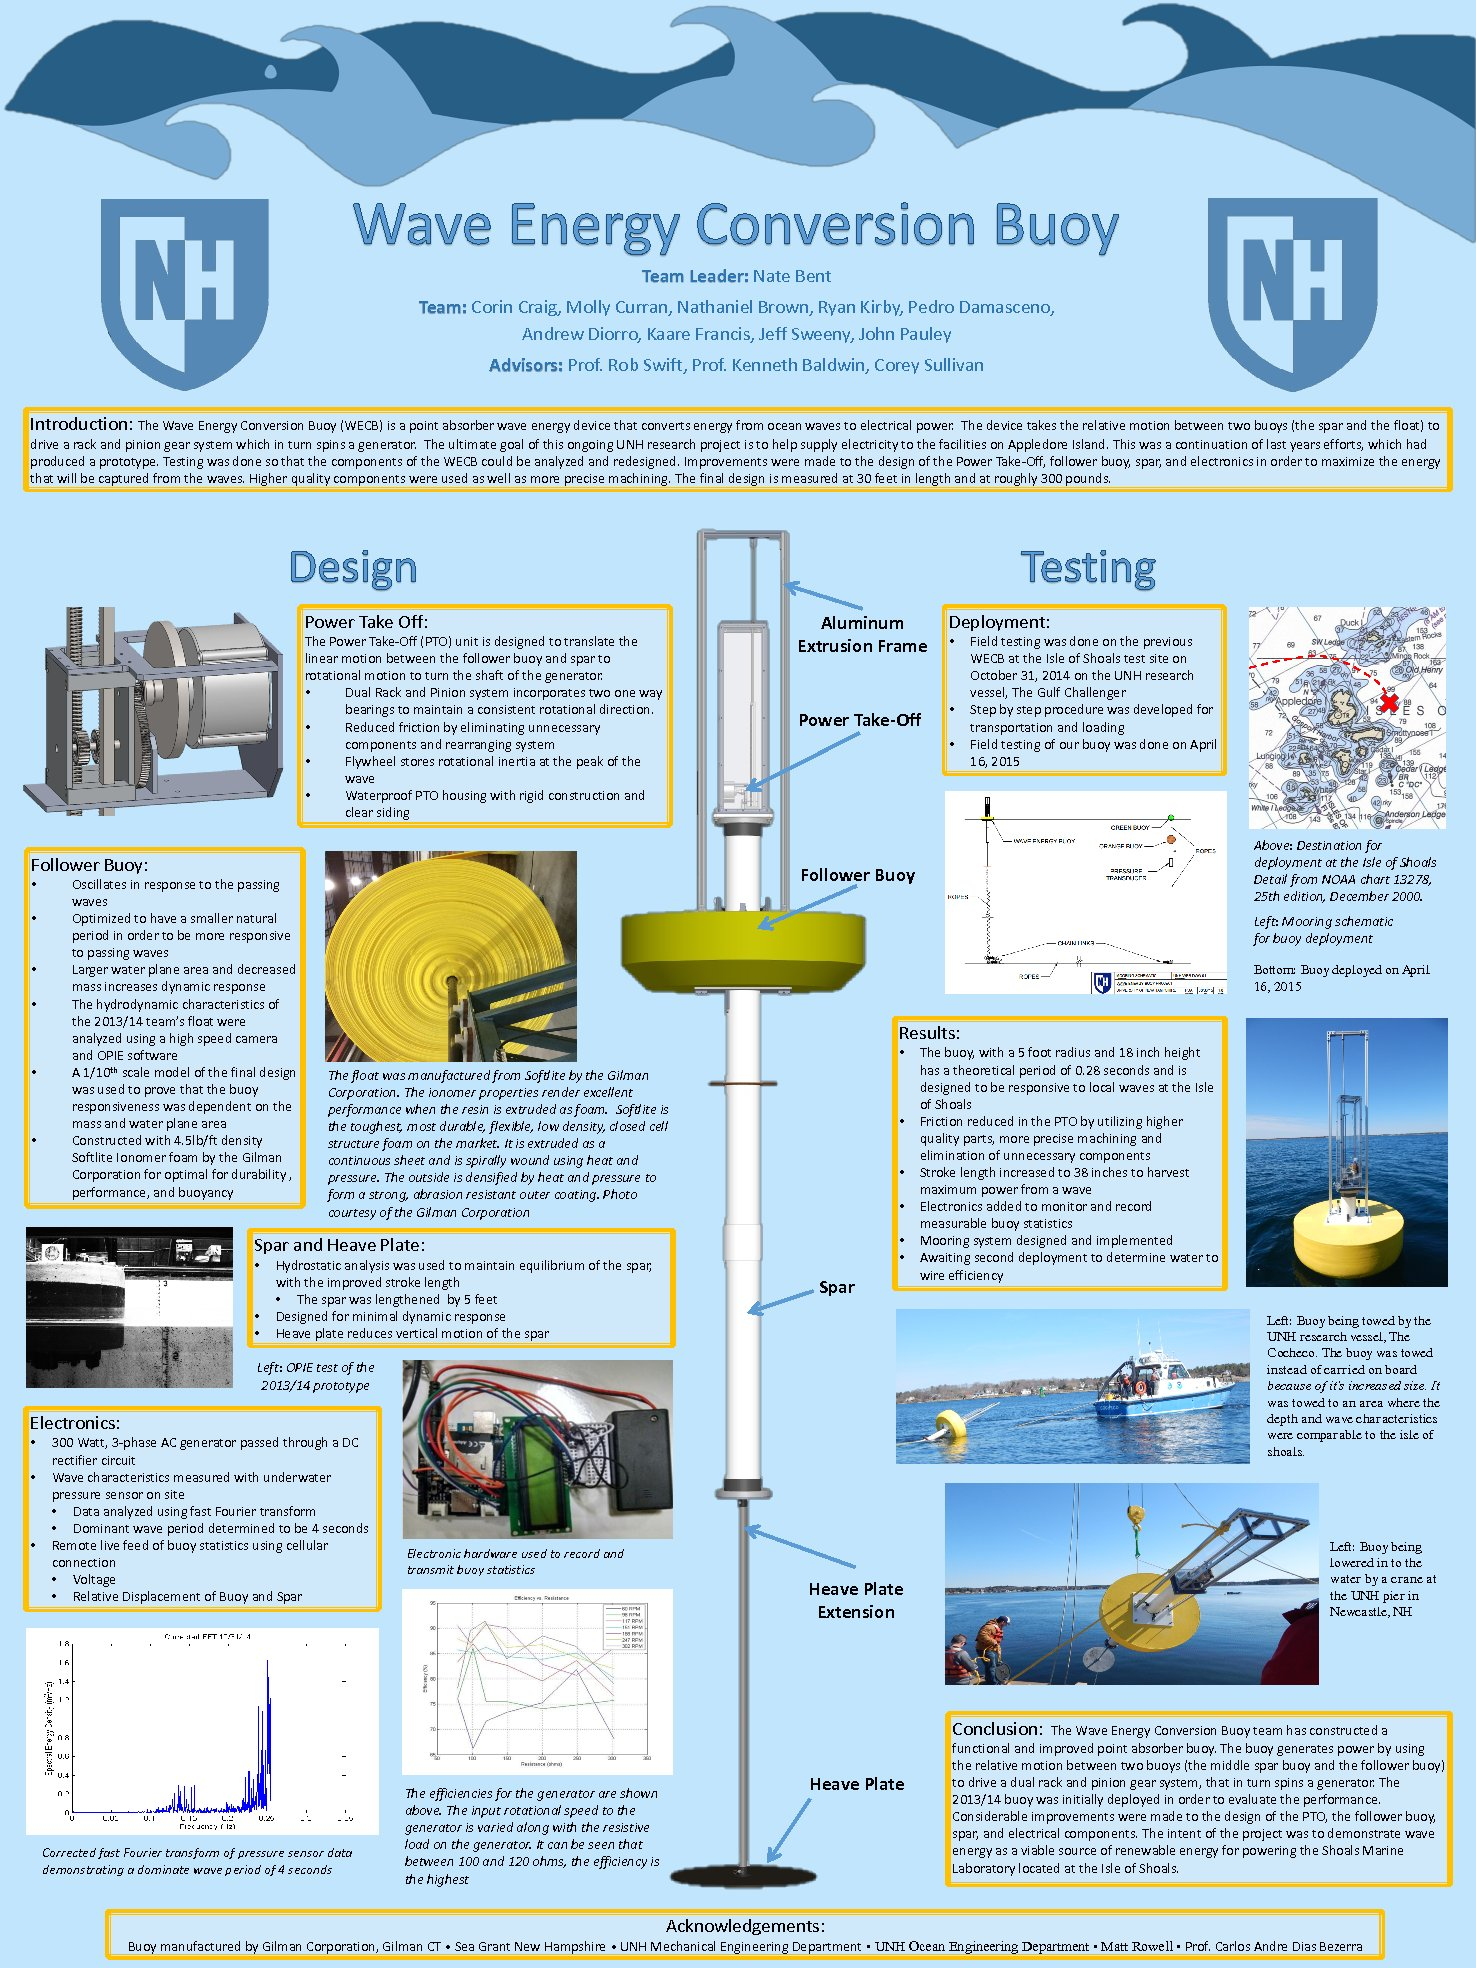 Wave Energy Conversion Buoy by kcc35